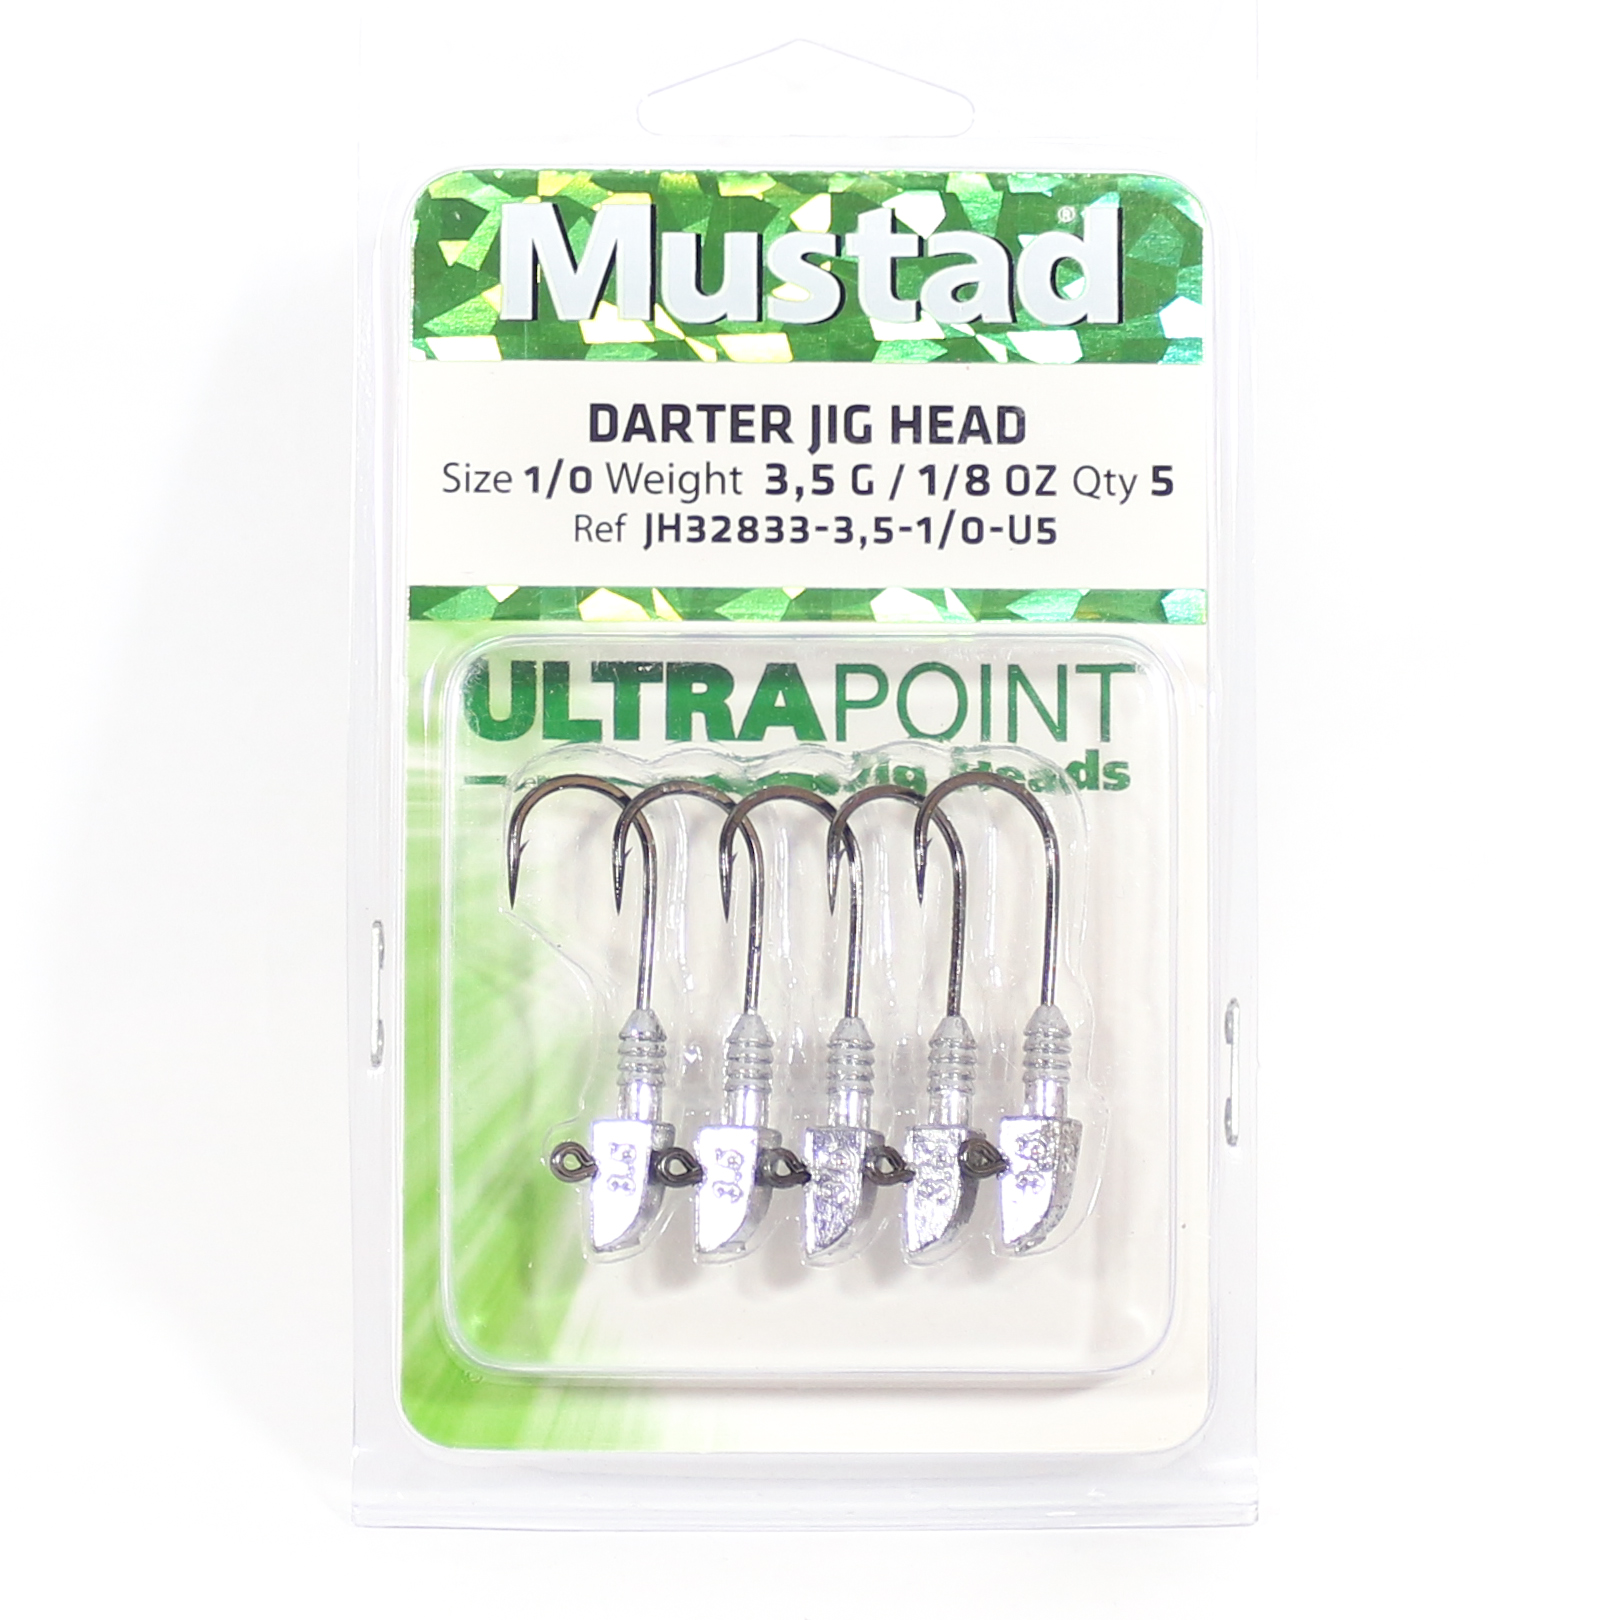 Mustad Jig Head Darter 3.5 Grams 5 Pcs per pack Size 1/0 (2845)